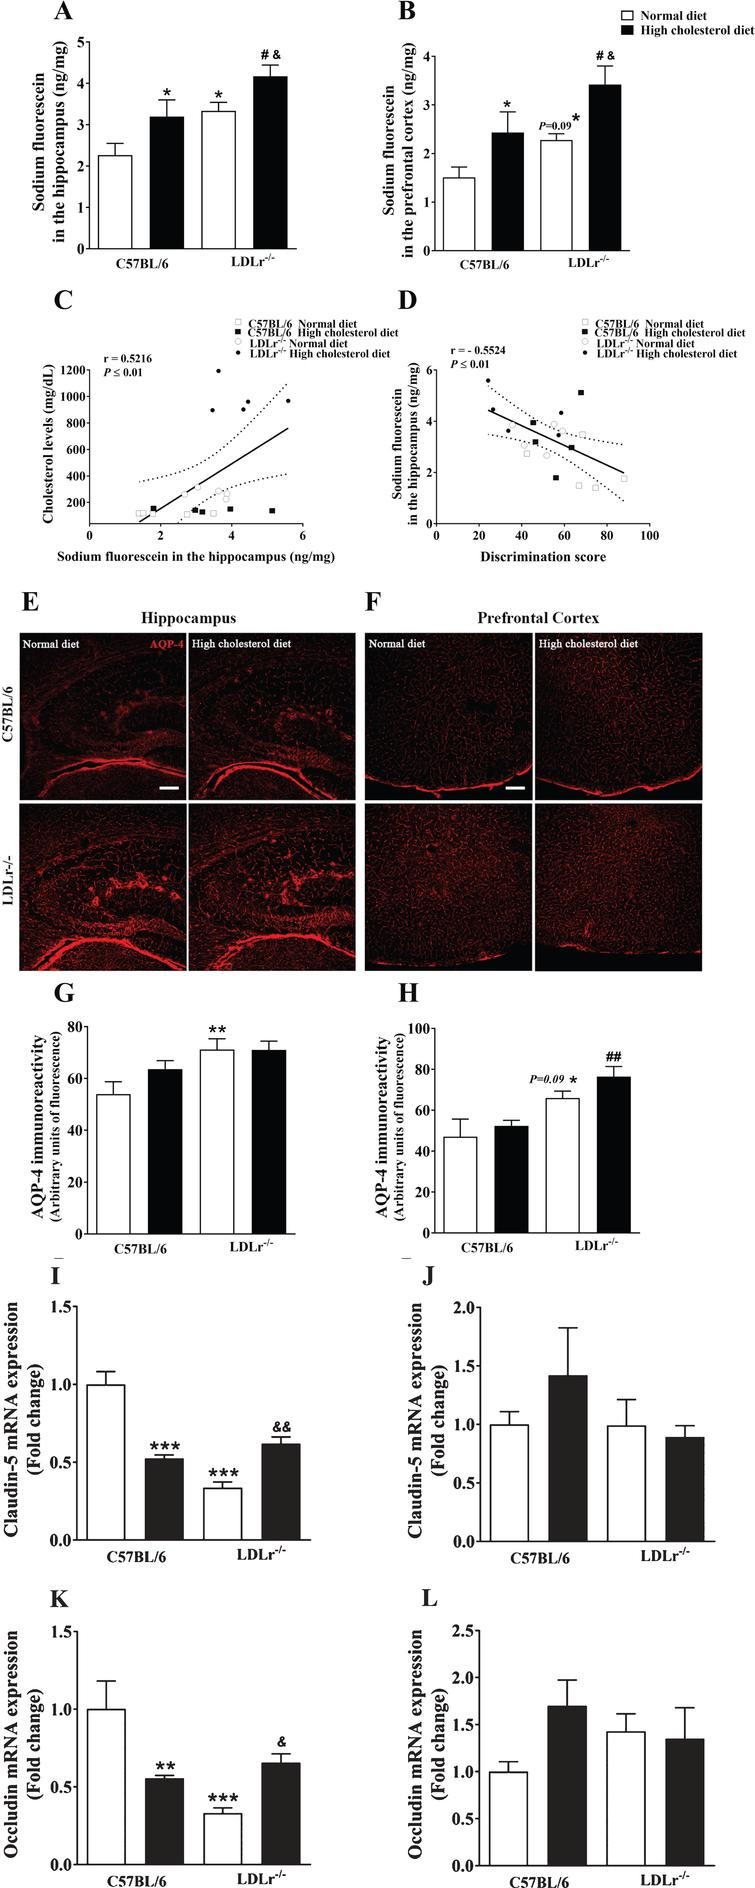 Effects of high cholesterol diet on blood-brain barrier (BBB) integrity of C57BL/6 wild-type and LDLr–/– mice. BBB permeability to sodium fluorescein in the (A) hippocampus and (B) prefrontal cortex of wild-type and LDLr–/– mice fed with normal or high cholesterol diet (n=6–7). C) A significant correlation between cholesterol levels and permeability to sodium fluorescein in the hippocampus. D) A Significant correlation between BBB permeability to sodium fluorescein in the hippocampus and discriminatory score (Pearson's correlations). Representative images of aquaporin-4 (AQP-4) content immunofluorescence analysis in the (E) hippocampus and (F) prefrontal cortex of the animals. The serial stack of images of AQP-4 (red) immunofluorescence staining were obtained with a Leica DMI6000 B confocal microscope. Scale bars, 150μm. Quantitation of AQP-4 immunoreactivity in the (G) hippocampus and (H) prefrontal cortex (n=4–5). Gene expression of tight junction's protein, claudin-5 and occludin, in mice's (I and K, respectively) hippocampus and (J and L, respectively) prefrontal cortex (n=5). Data are expressed as the mean±SEM. *p<0.05, **p<0.01, and ***p<0.001 compared with C57BL/6 mice fed with a normal diet, #p<0.05 and ##p<0.01 compared with C57BL/6 mice fed with a high cholesterol diet, and &p<0.05 and &&p<0.01 compared with LDLr–/– mice fed with a normal diet (Two-way ANOVA followed by Duncan post-hoc test).